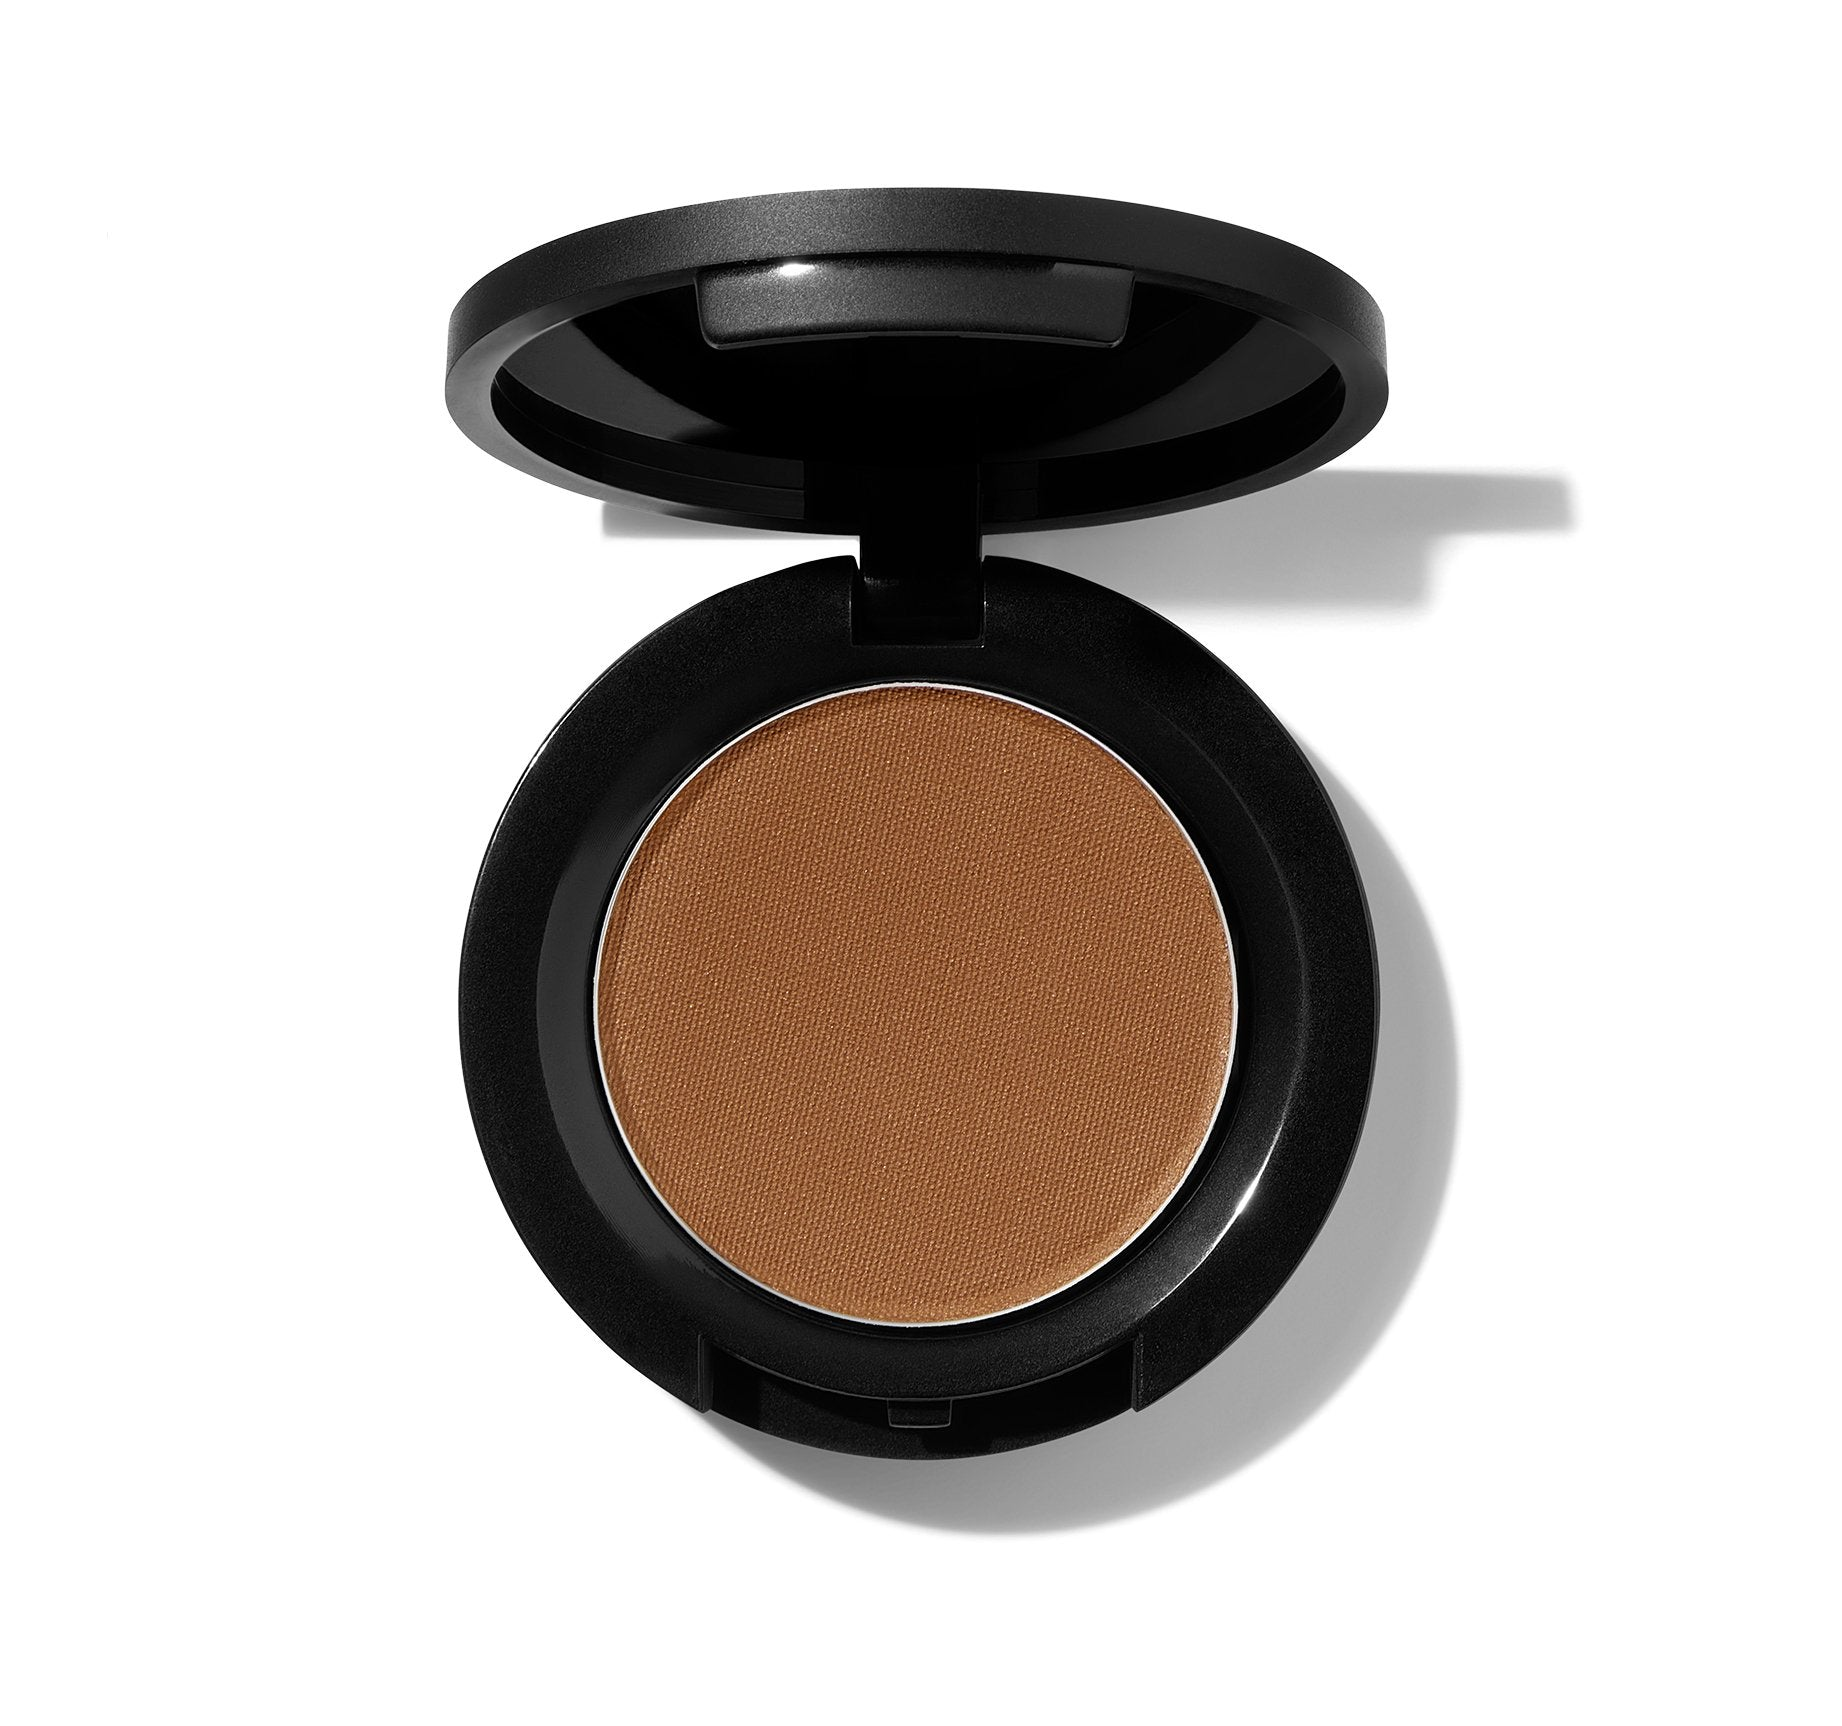 BROW POWDER - ALMOND, view larger image